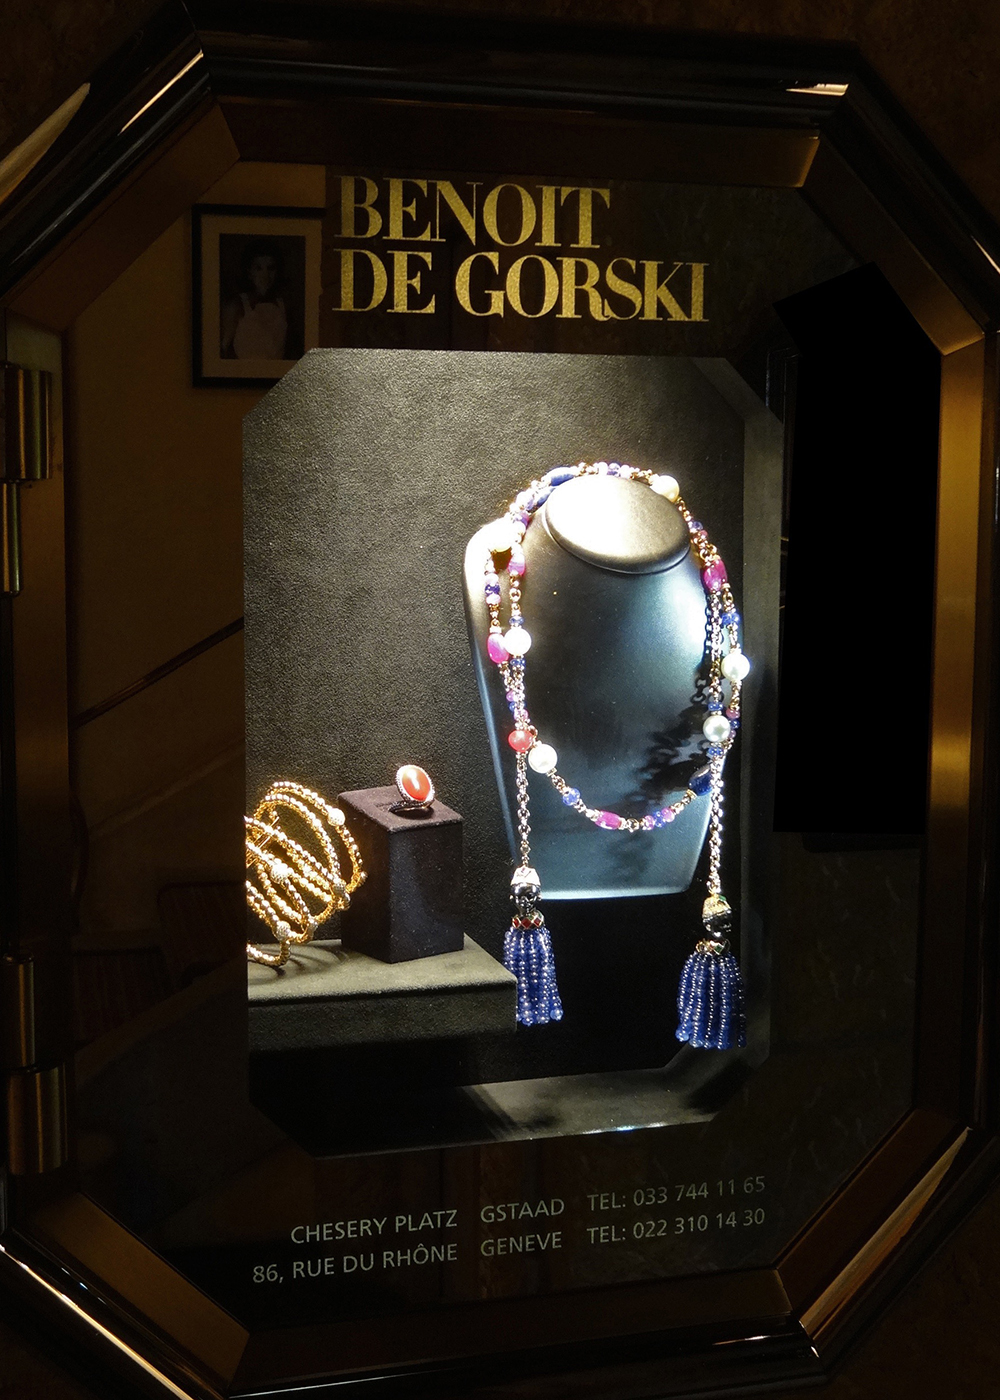 #degorski #benoitdegorski #gstaad #gstaadpalace #lighting #led #display #showcase #ledspot #focus #eclairageproduit #vitrine #boutique